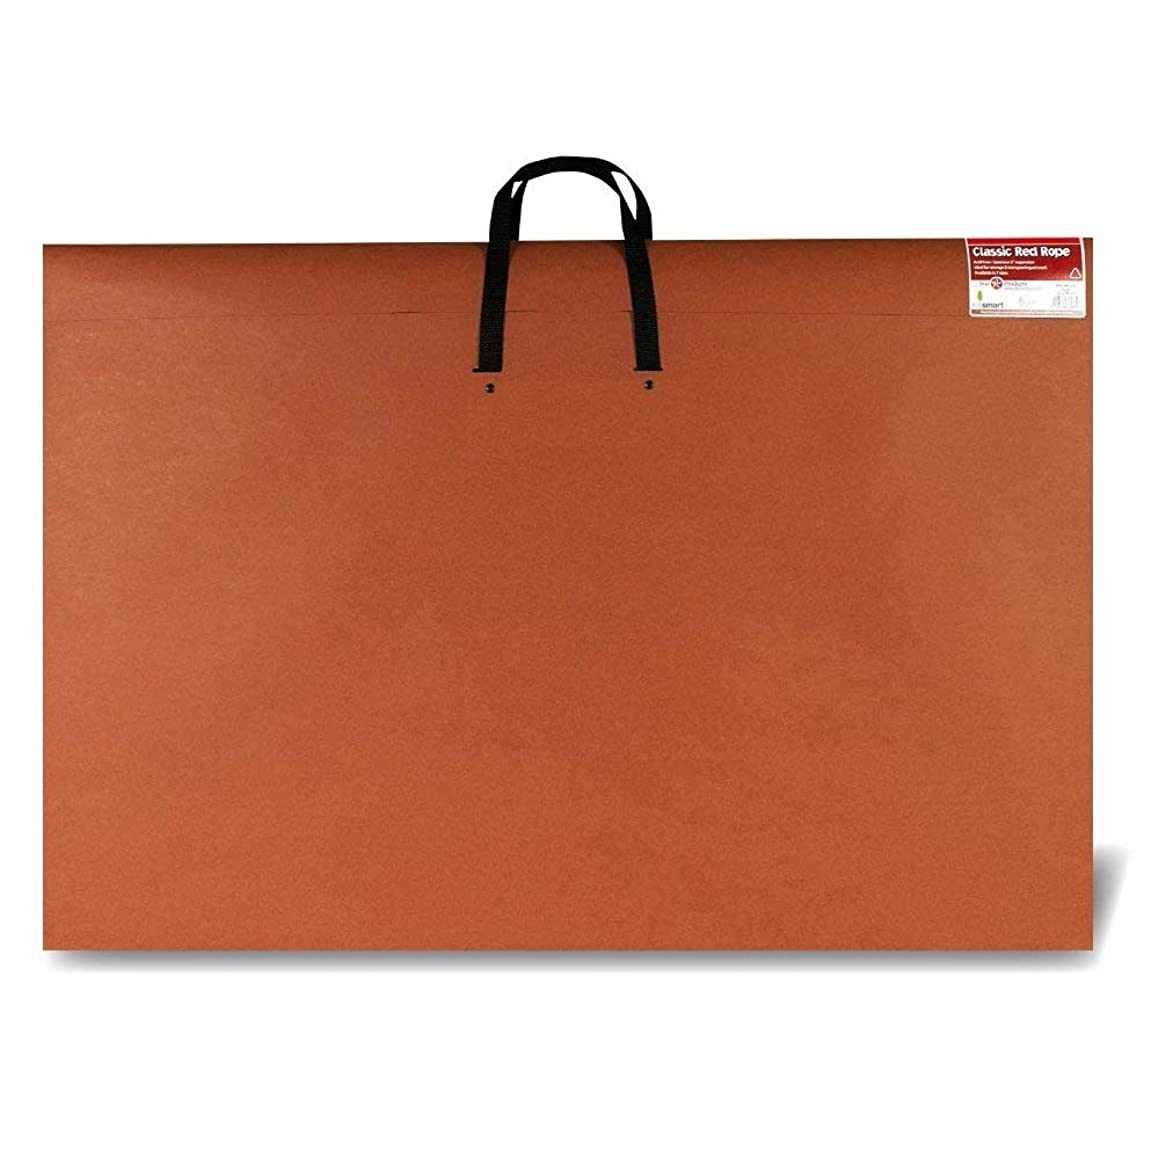 Star Products 24 x 36, Classic Red, Paper Artist Portfolio with Soft Woven Handle – Poster, Art Storage (246H), 24